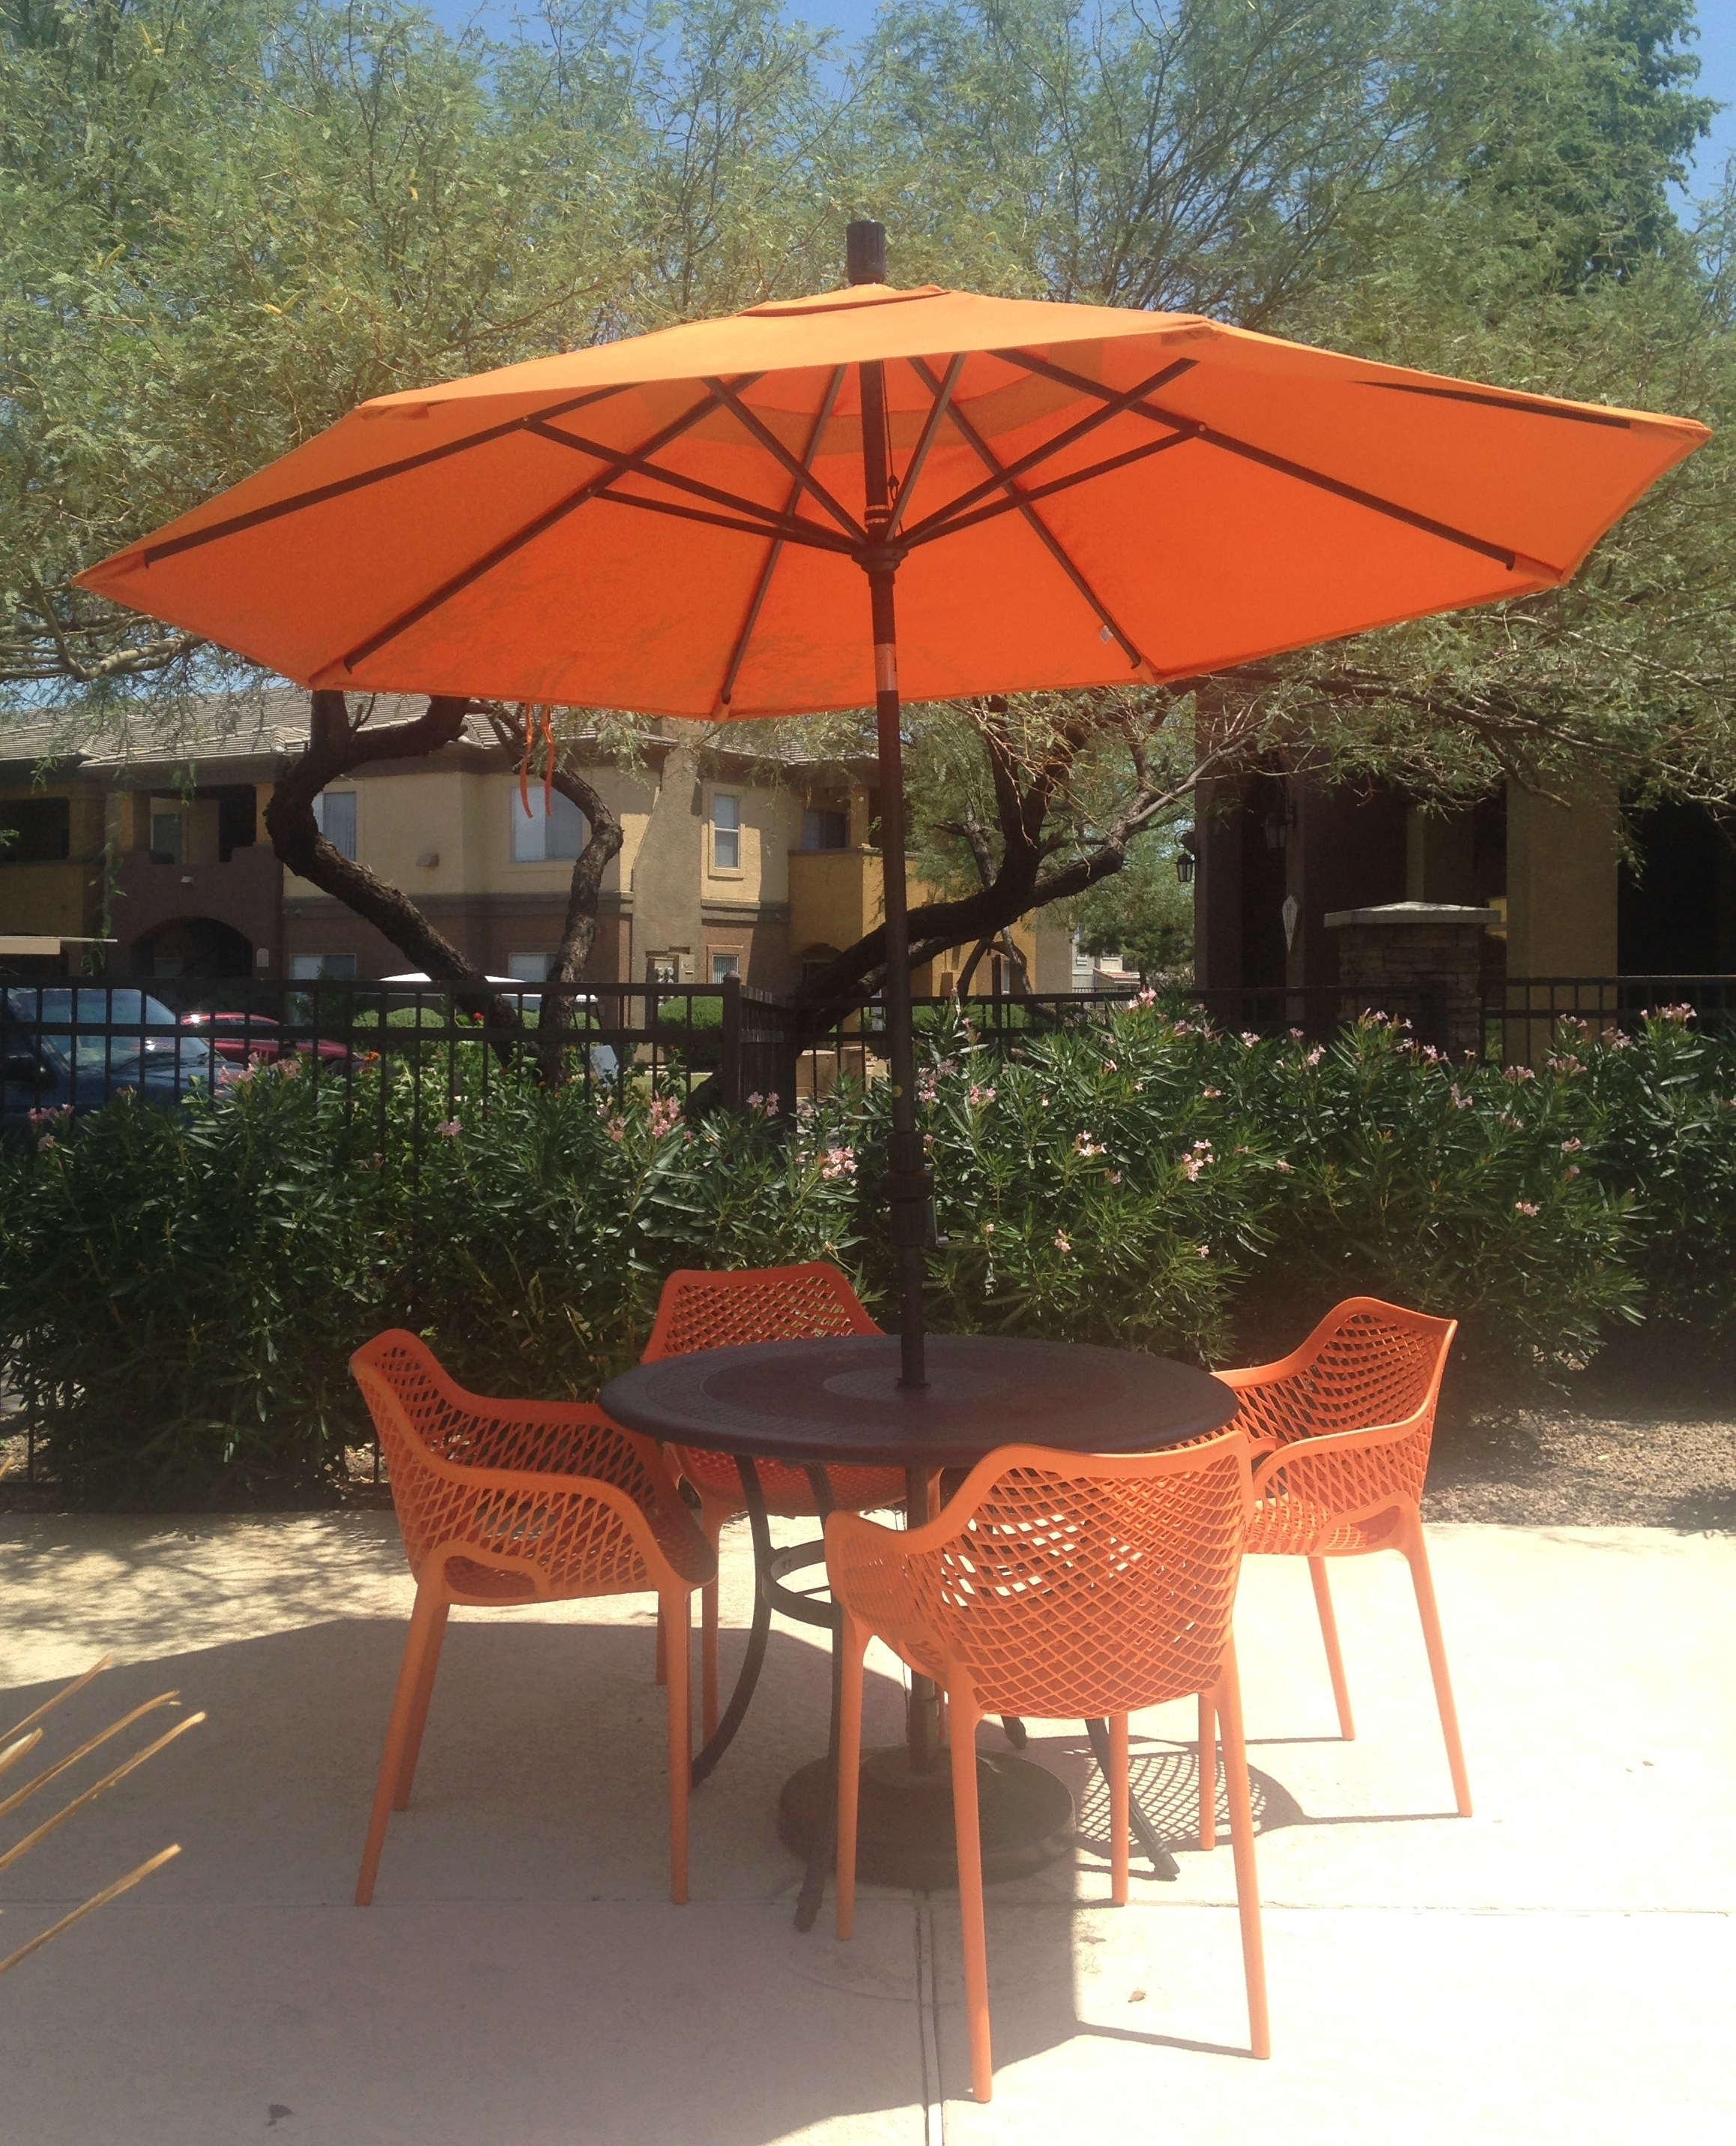 Most Recent Photo Of Target Patio Umbrella Exterior Orange Target Patio With Regard To Small Patio Umbrellas (View 7 of 20)